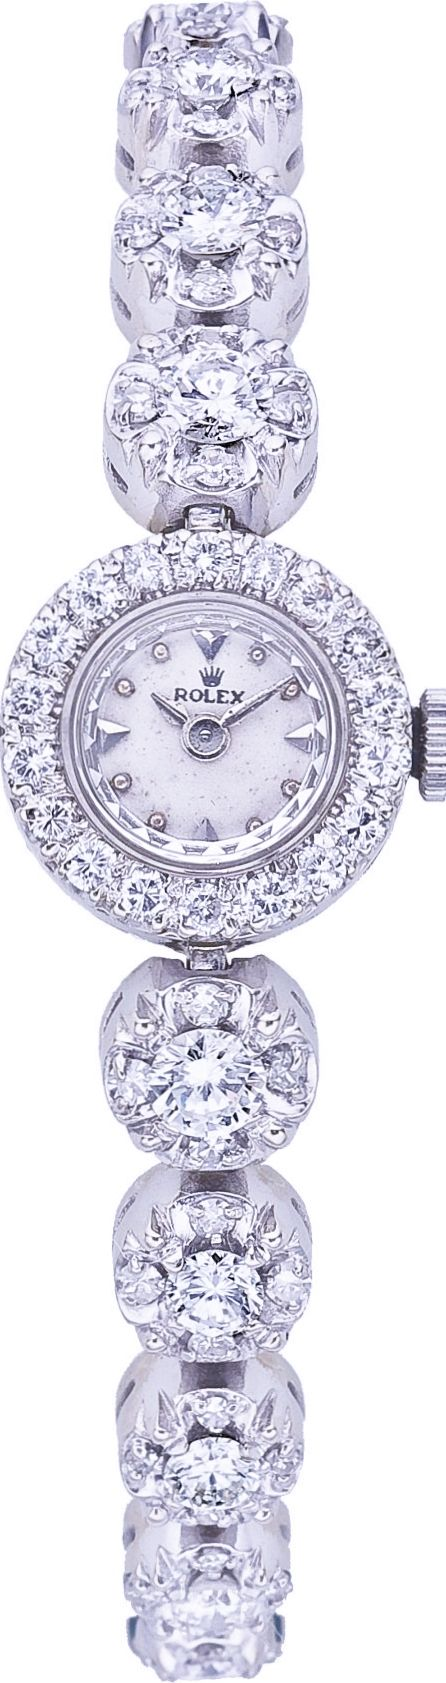 Woman's Diamond Rolex watch dream.This watch is amazing. #diamonds #bling www.findinghomesinlasvegas.com. Keller Williams Las Vegas & Henderson, NV.